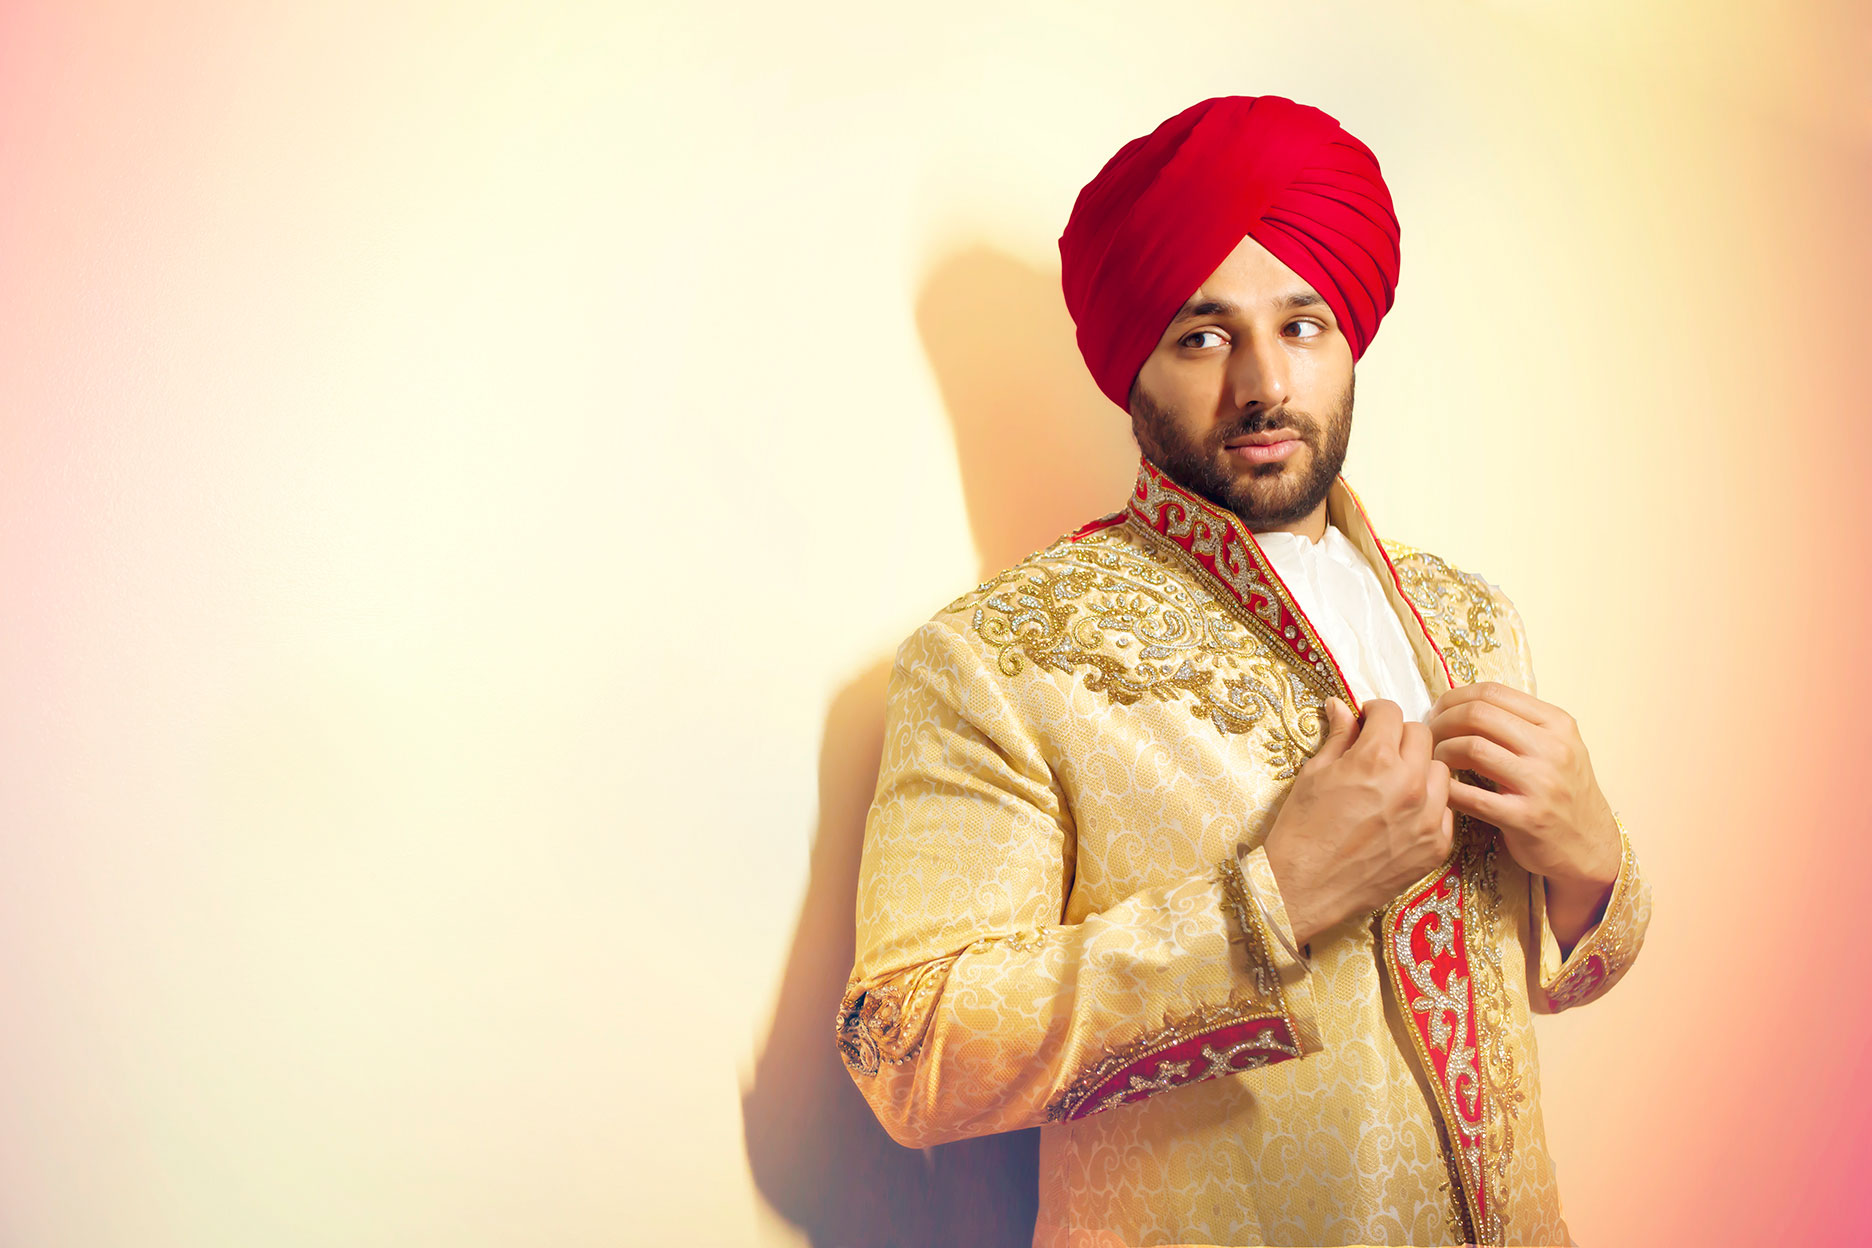 Sikh Groom Wedding Portrait